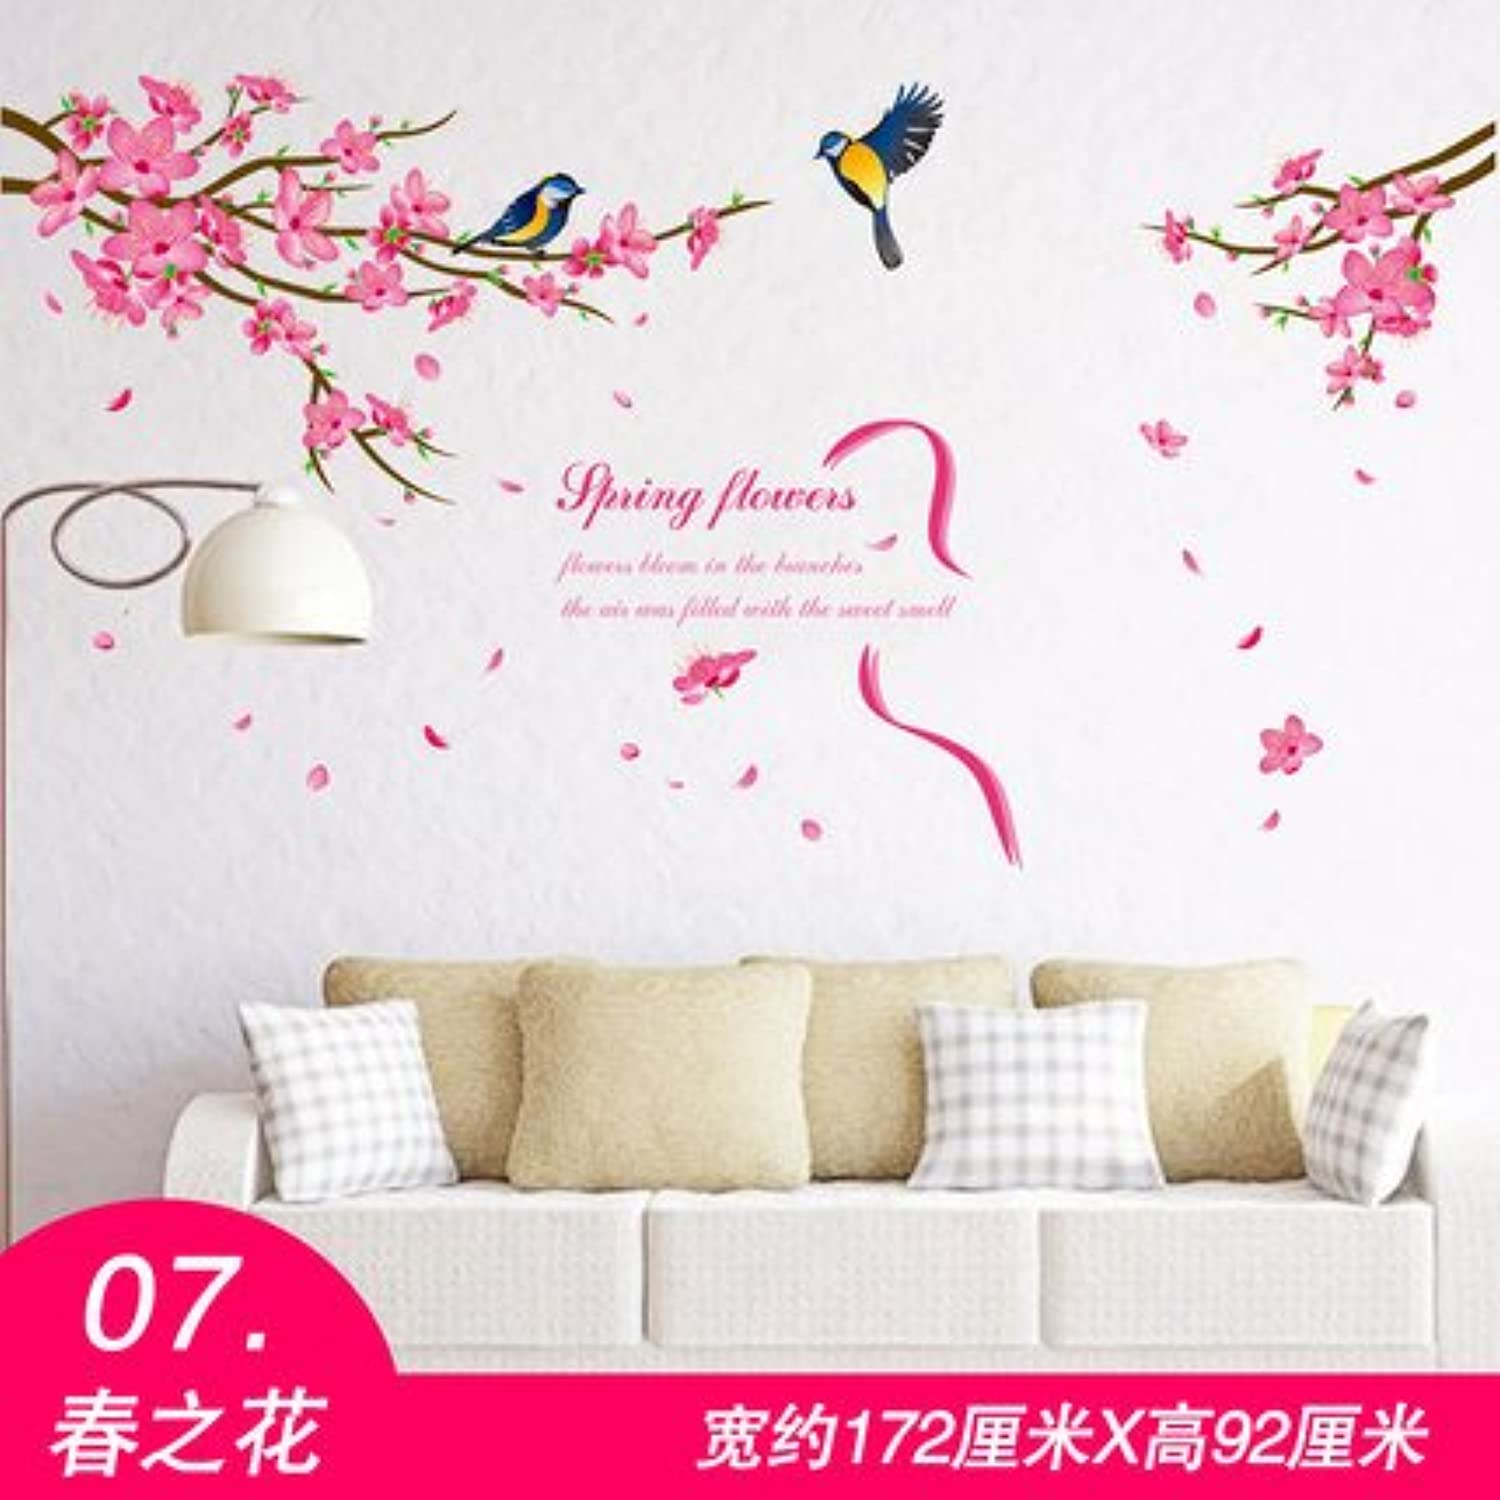 Znzbzt Wall Sticker Wall Decoration Mural Creative Background 3D ThreeDimensional Wallpaper selfAdhesive, 07 Spring Flowers, Large